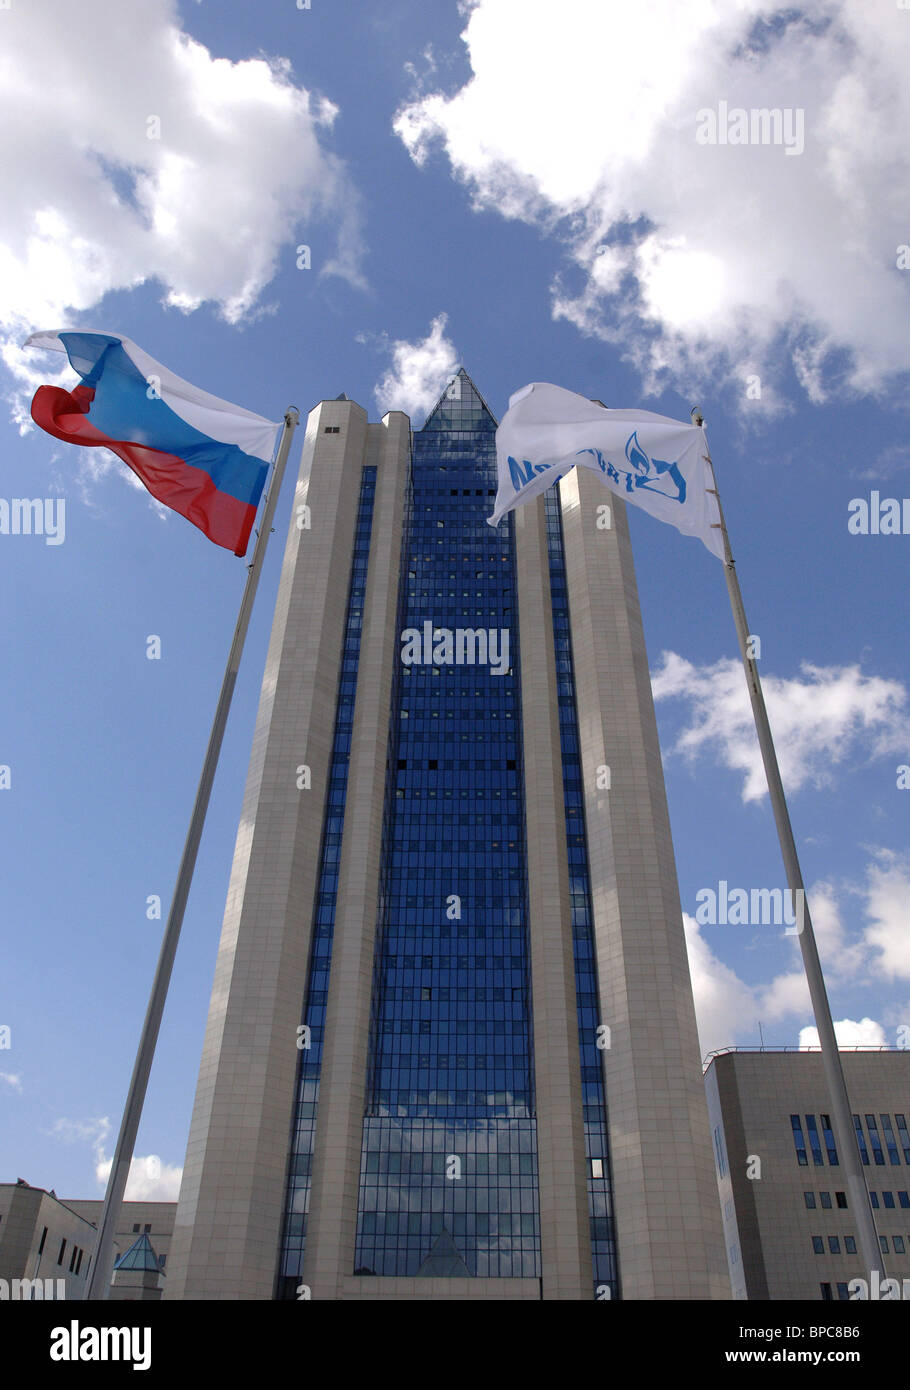 Gazprom's annual shareholders' meeting held in Moscow - Stock Image